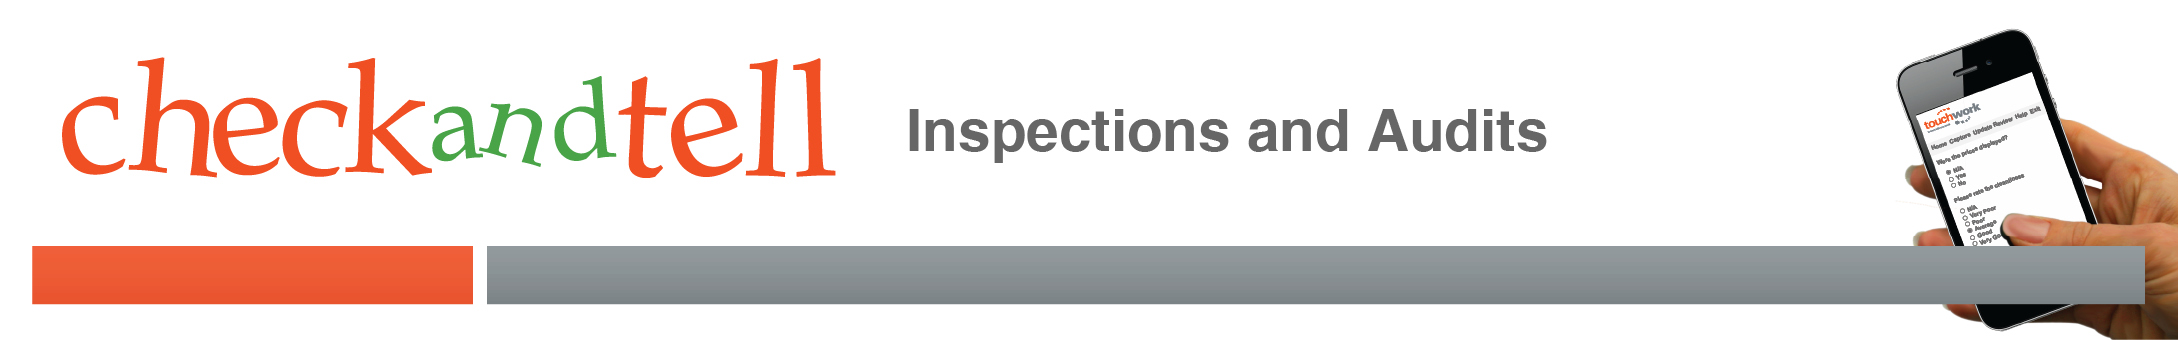 CheckandTell Inspections and Audits logo